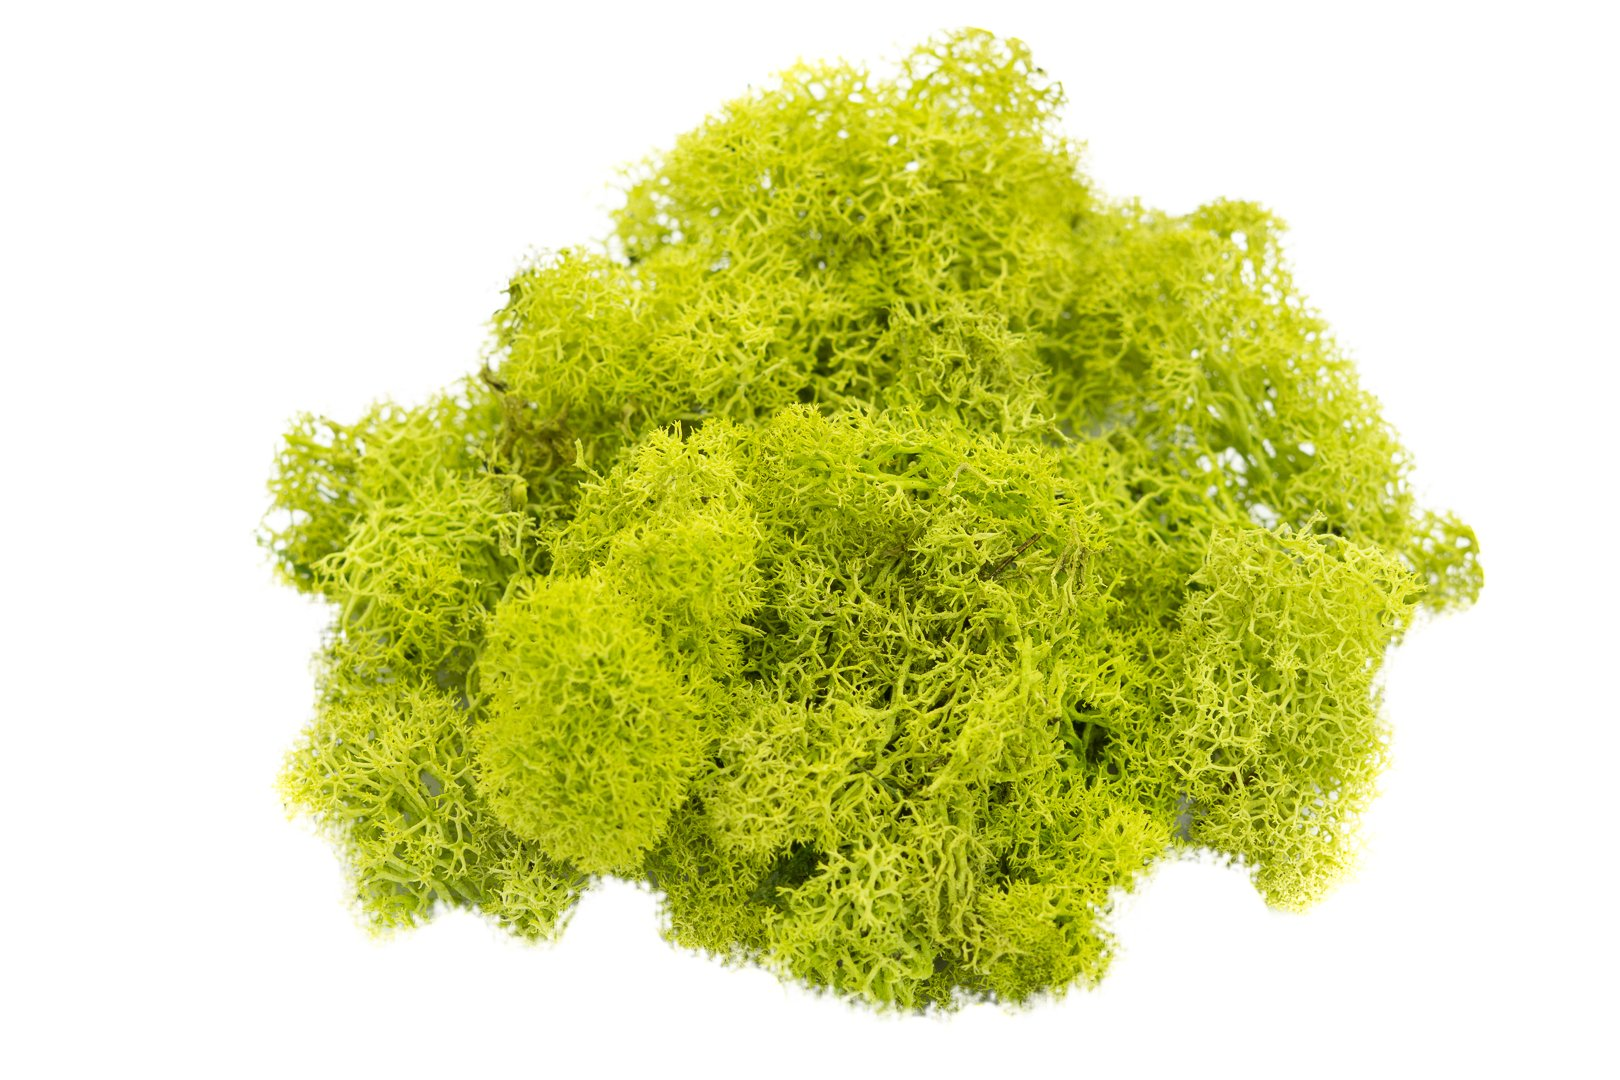 Reindeer Moss Preserved | Lime Green Moss -4 oz | For Fairy Gardens, Terrariums, or any Craft or Floral Project | Nautical Crush Trading TM (4 Ounces)